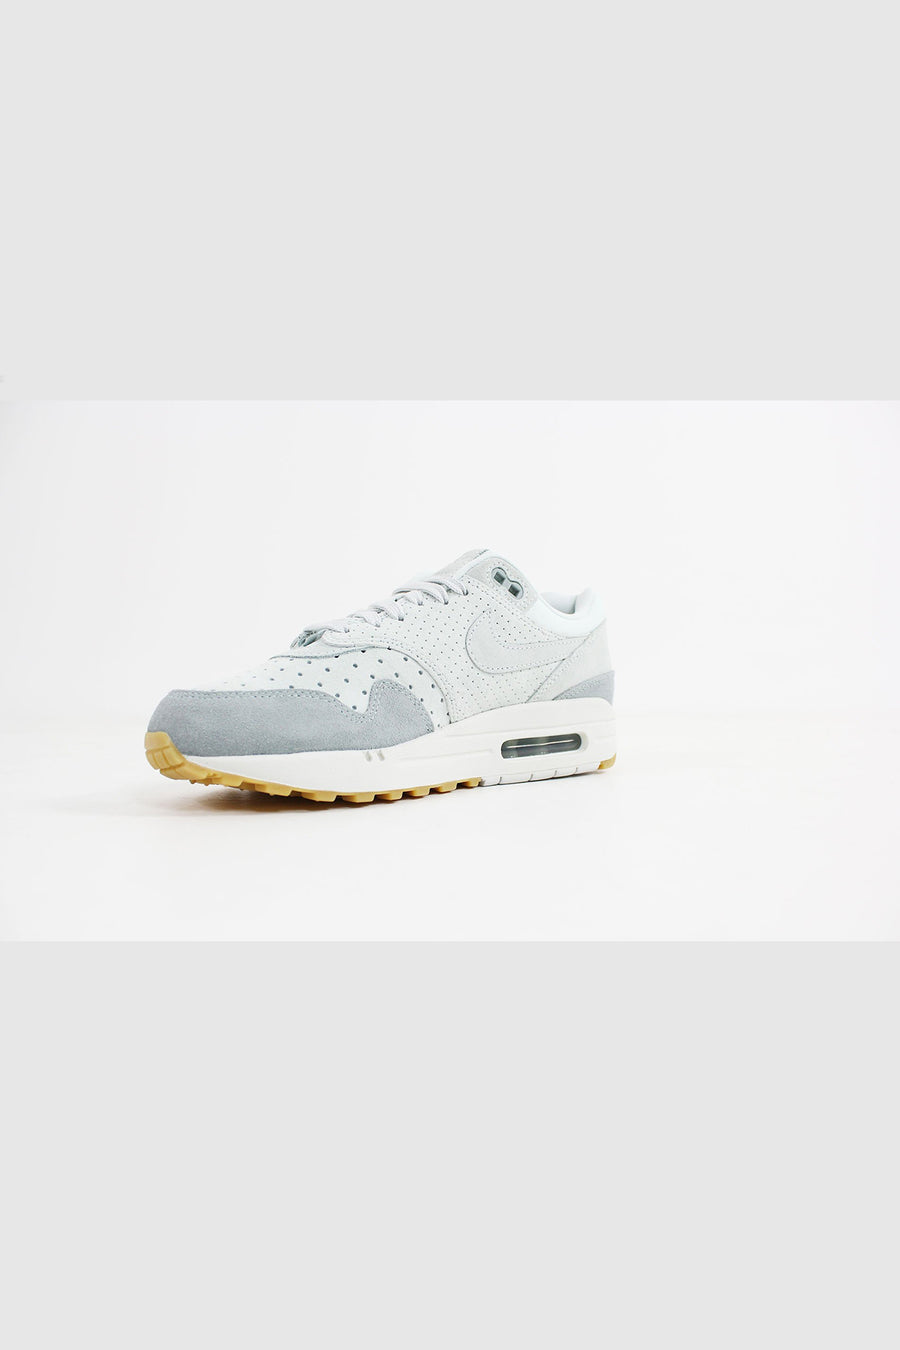 Nike - Air Max 1 Premium Frauen (Barely Grey / Barley Grey Light Bimsstein) 454746-019